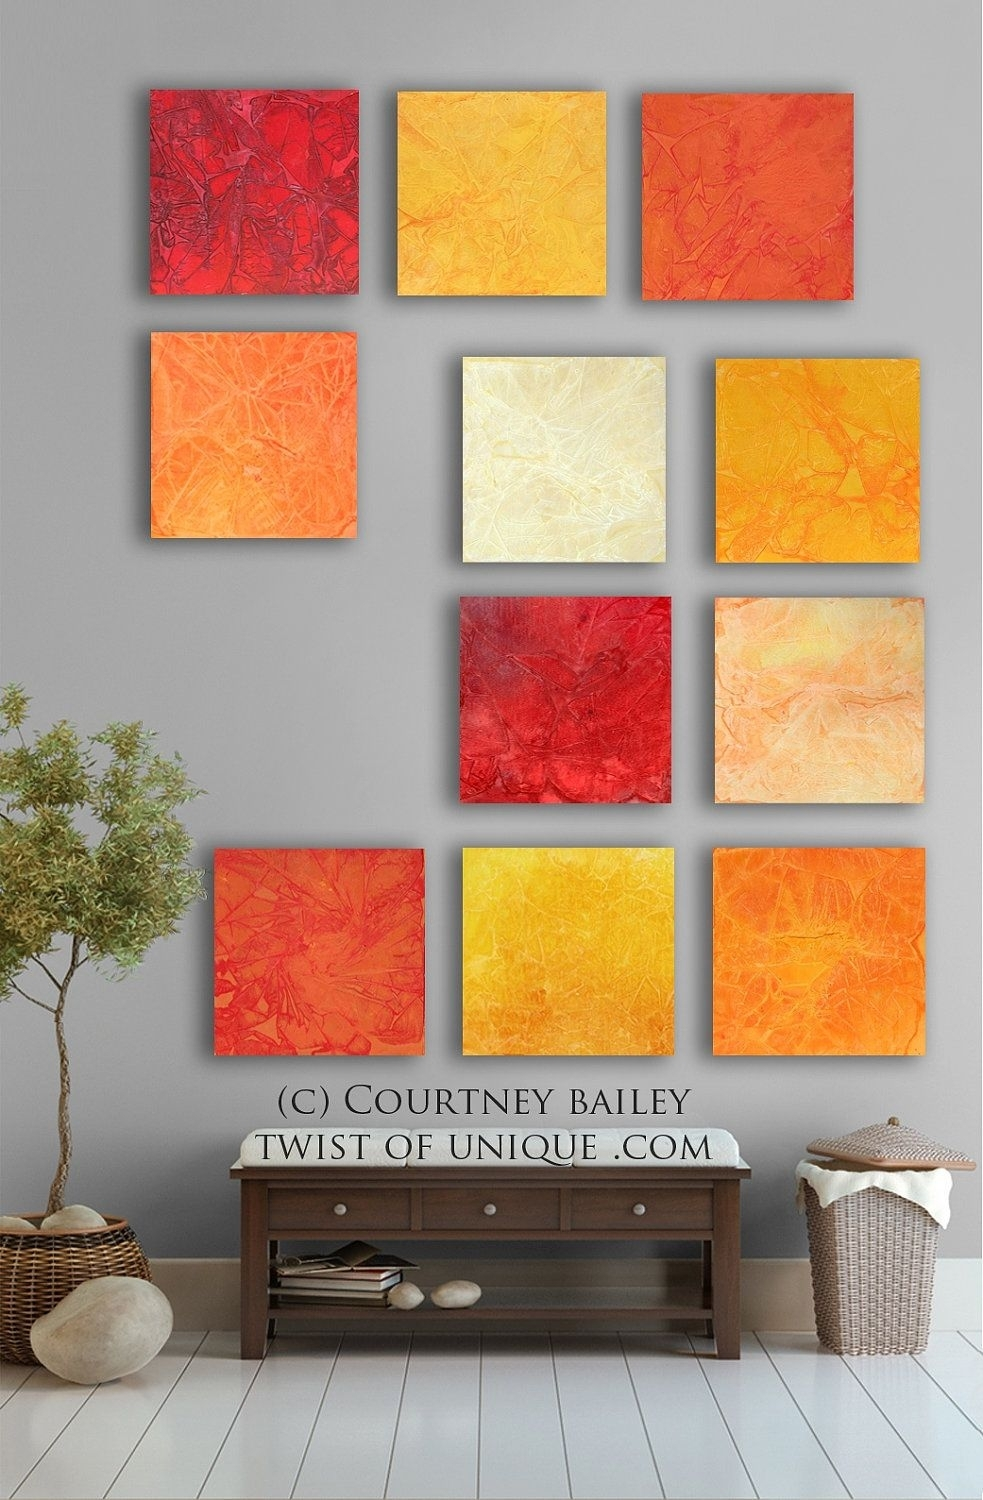 Bright Abstract Art, 11 Square Custom Abstract Wall Art, Large With Best And Newest Bright Abstract Wall Art (View 5 of 20)